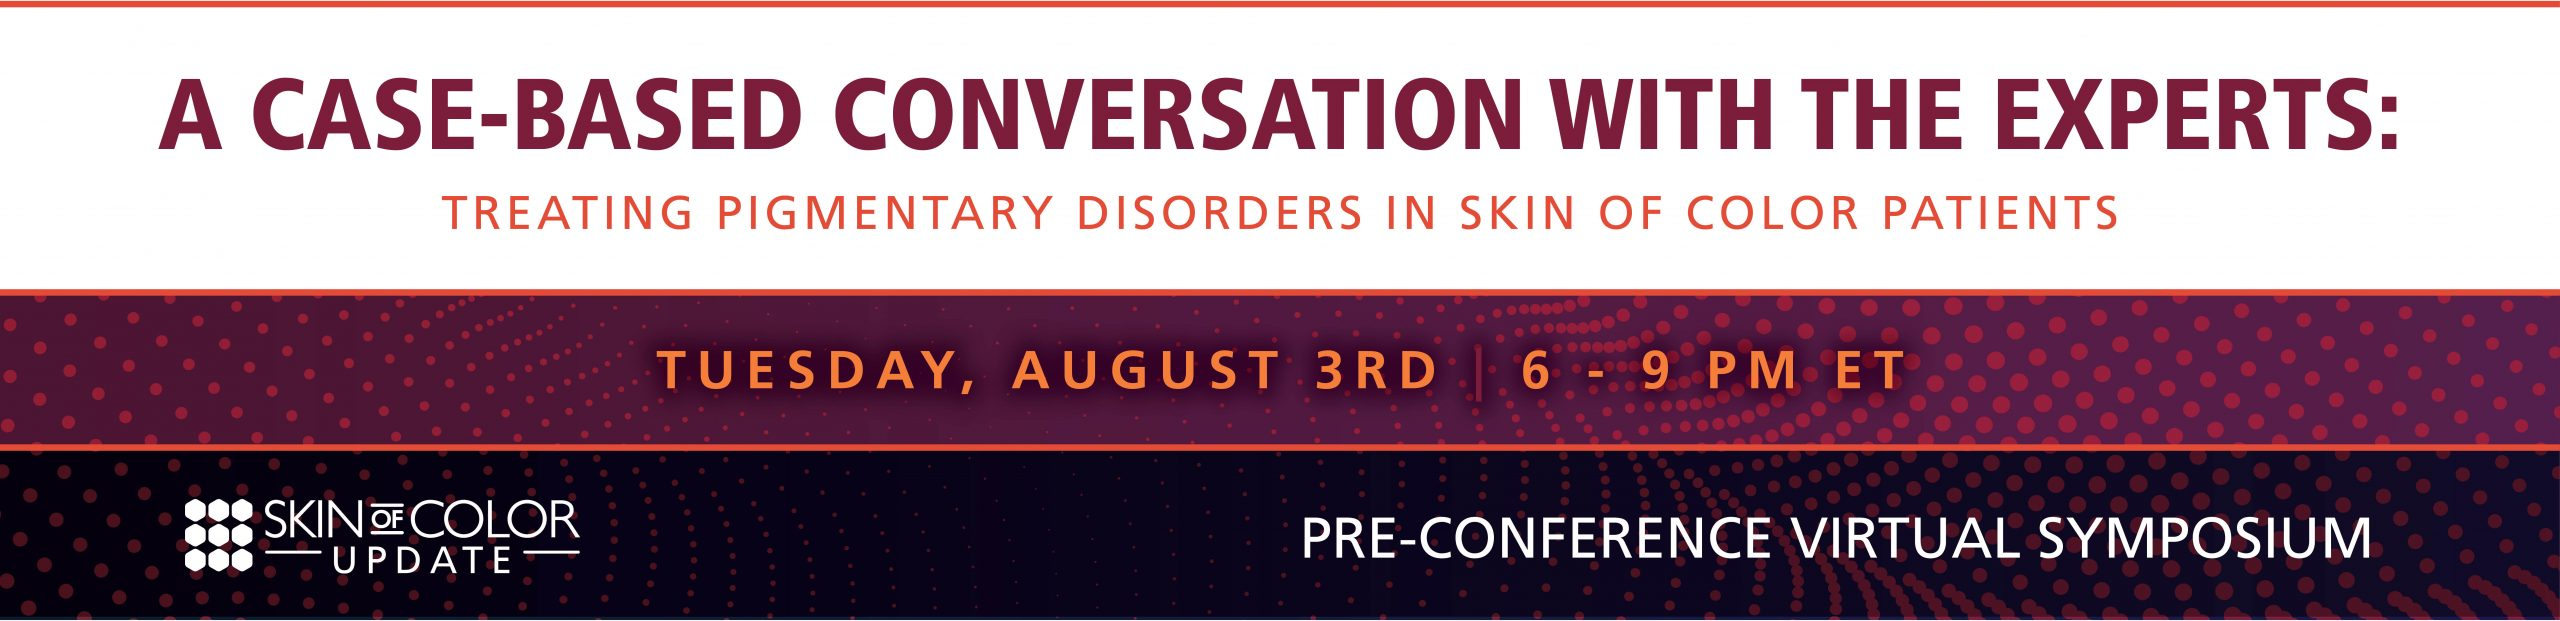 SKIN OF COLOR UPDATE PRE-CONFERENCE VIRTUAL SYMPOSIUM